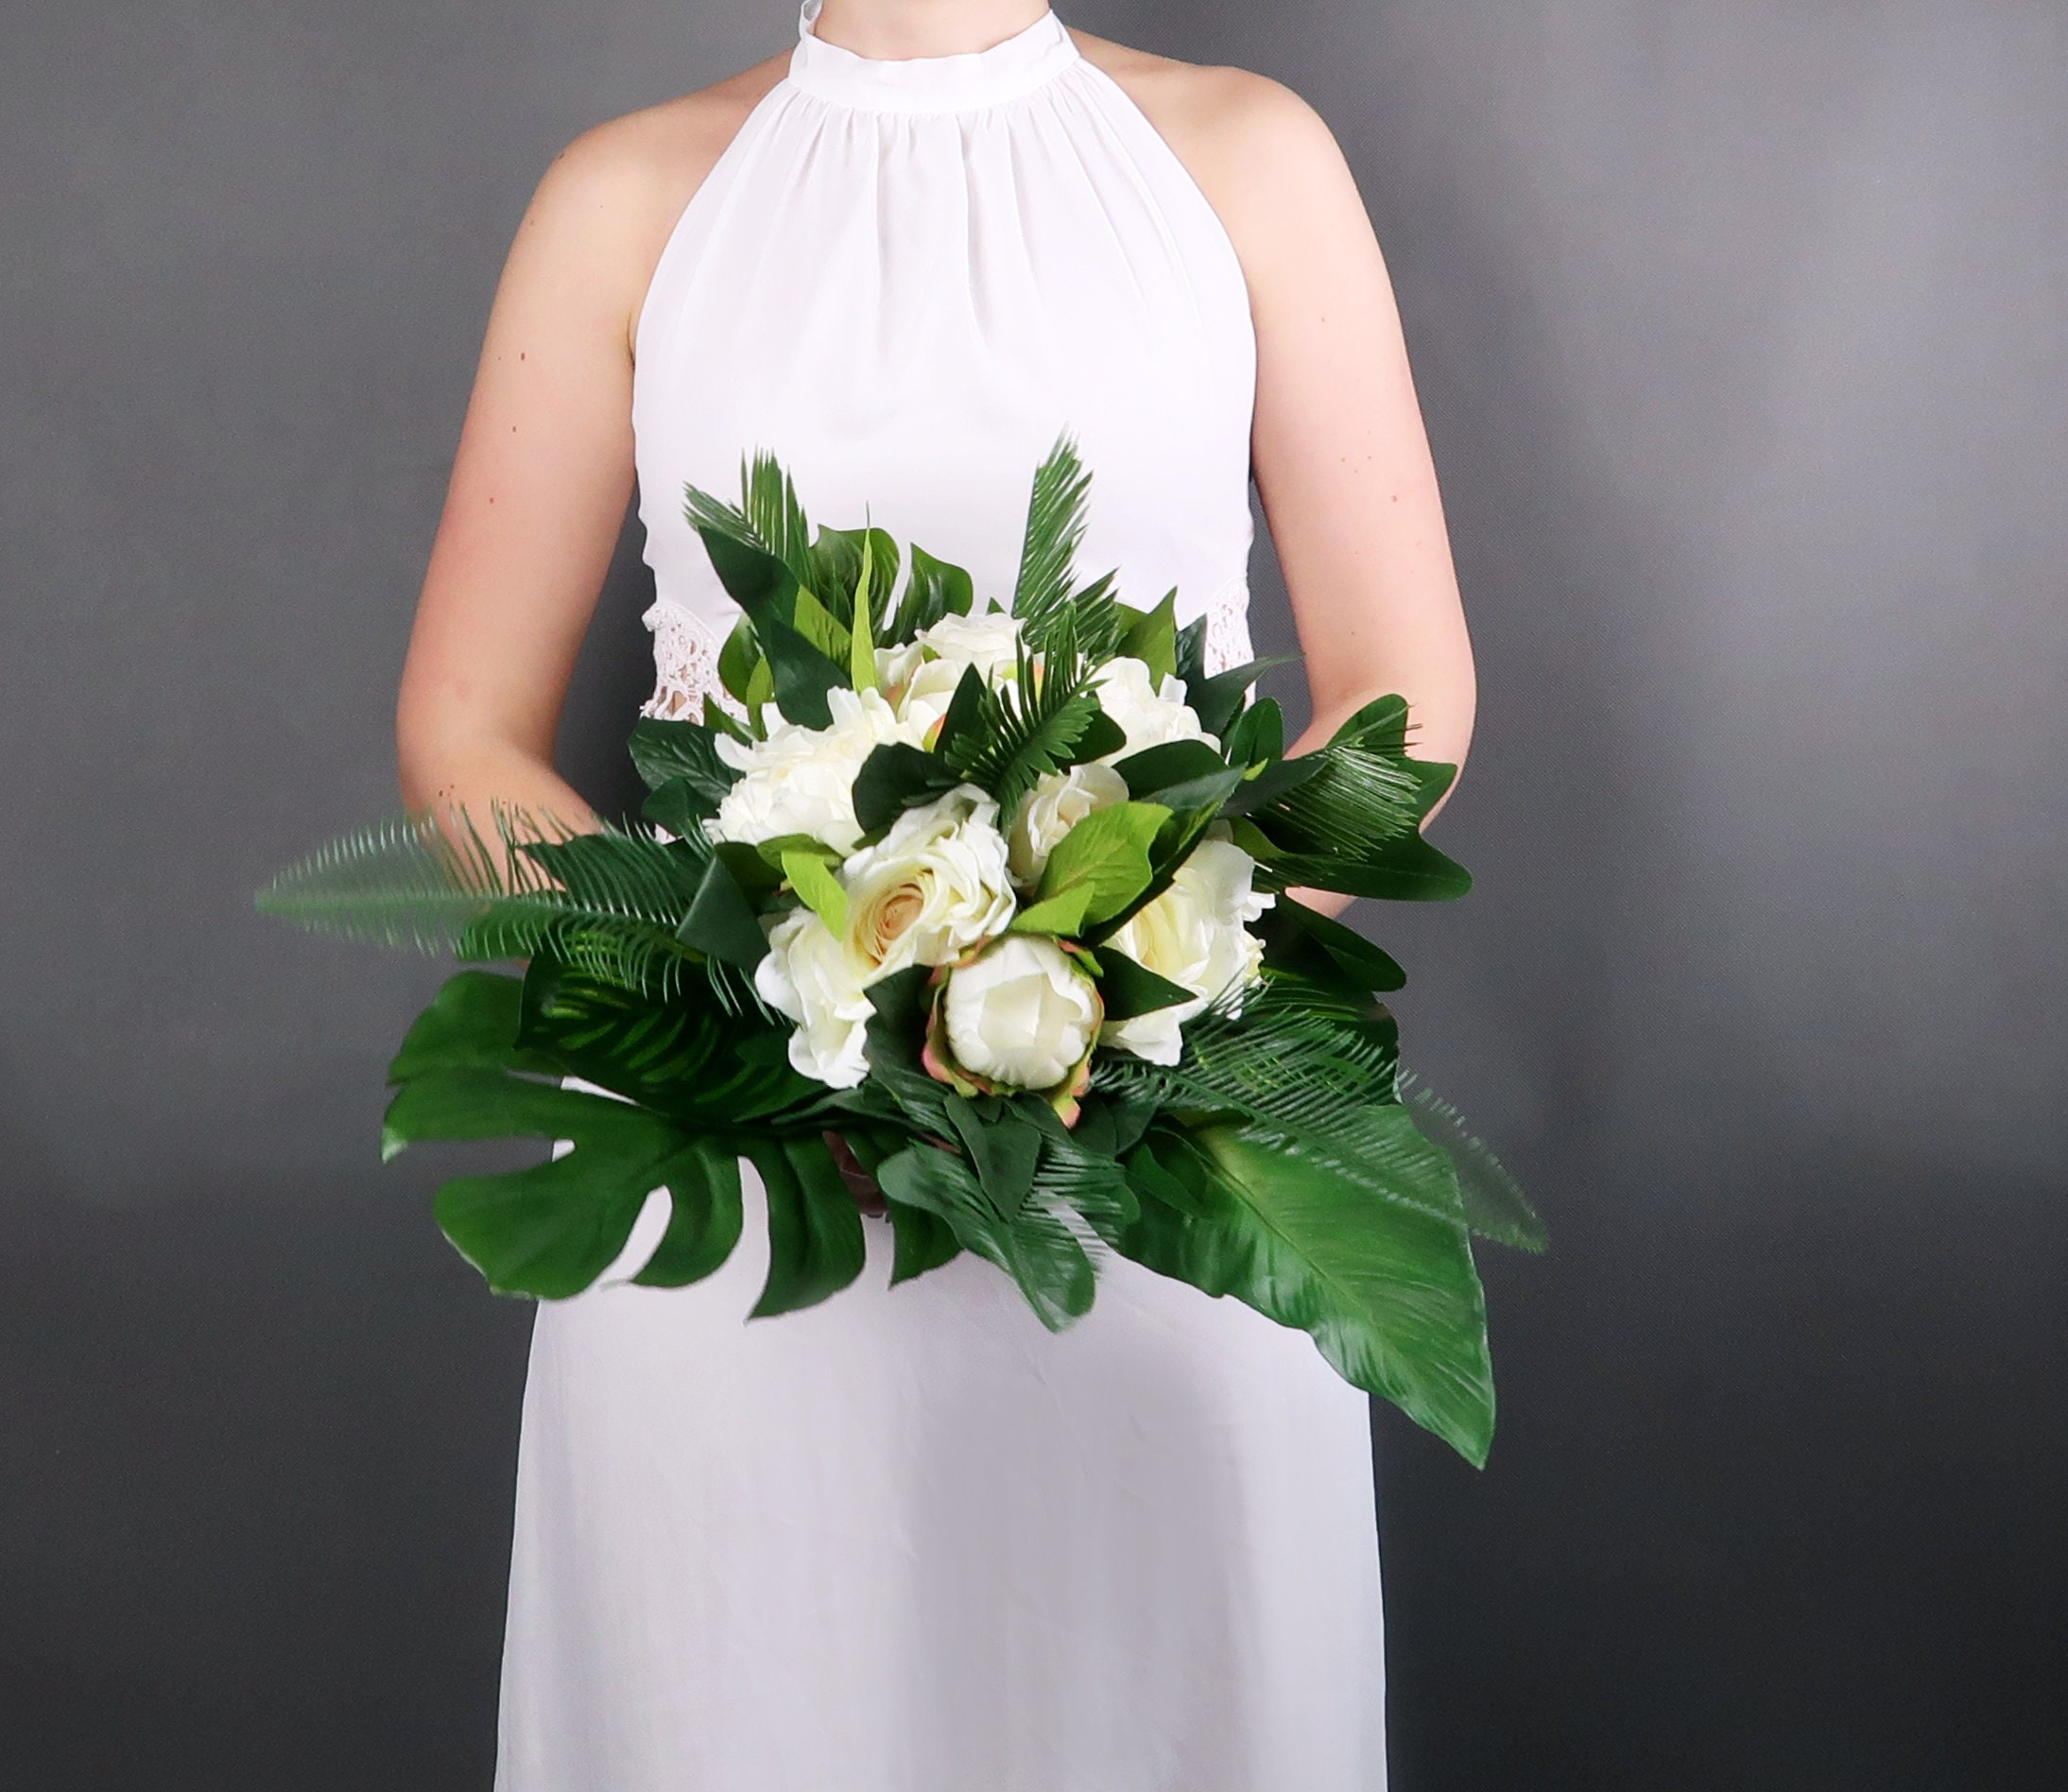 Tropical Wedding Bouquet With White Flowers And Greenery